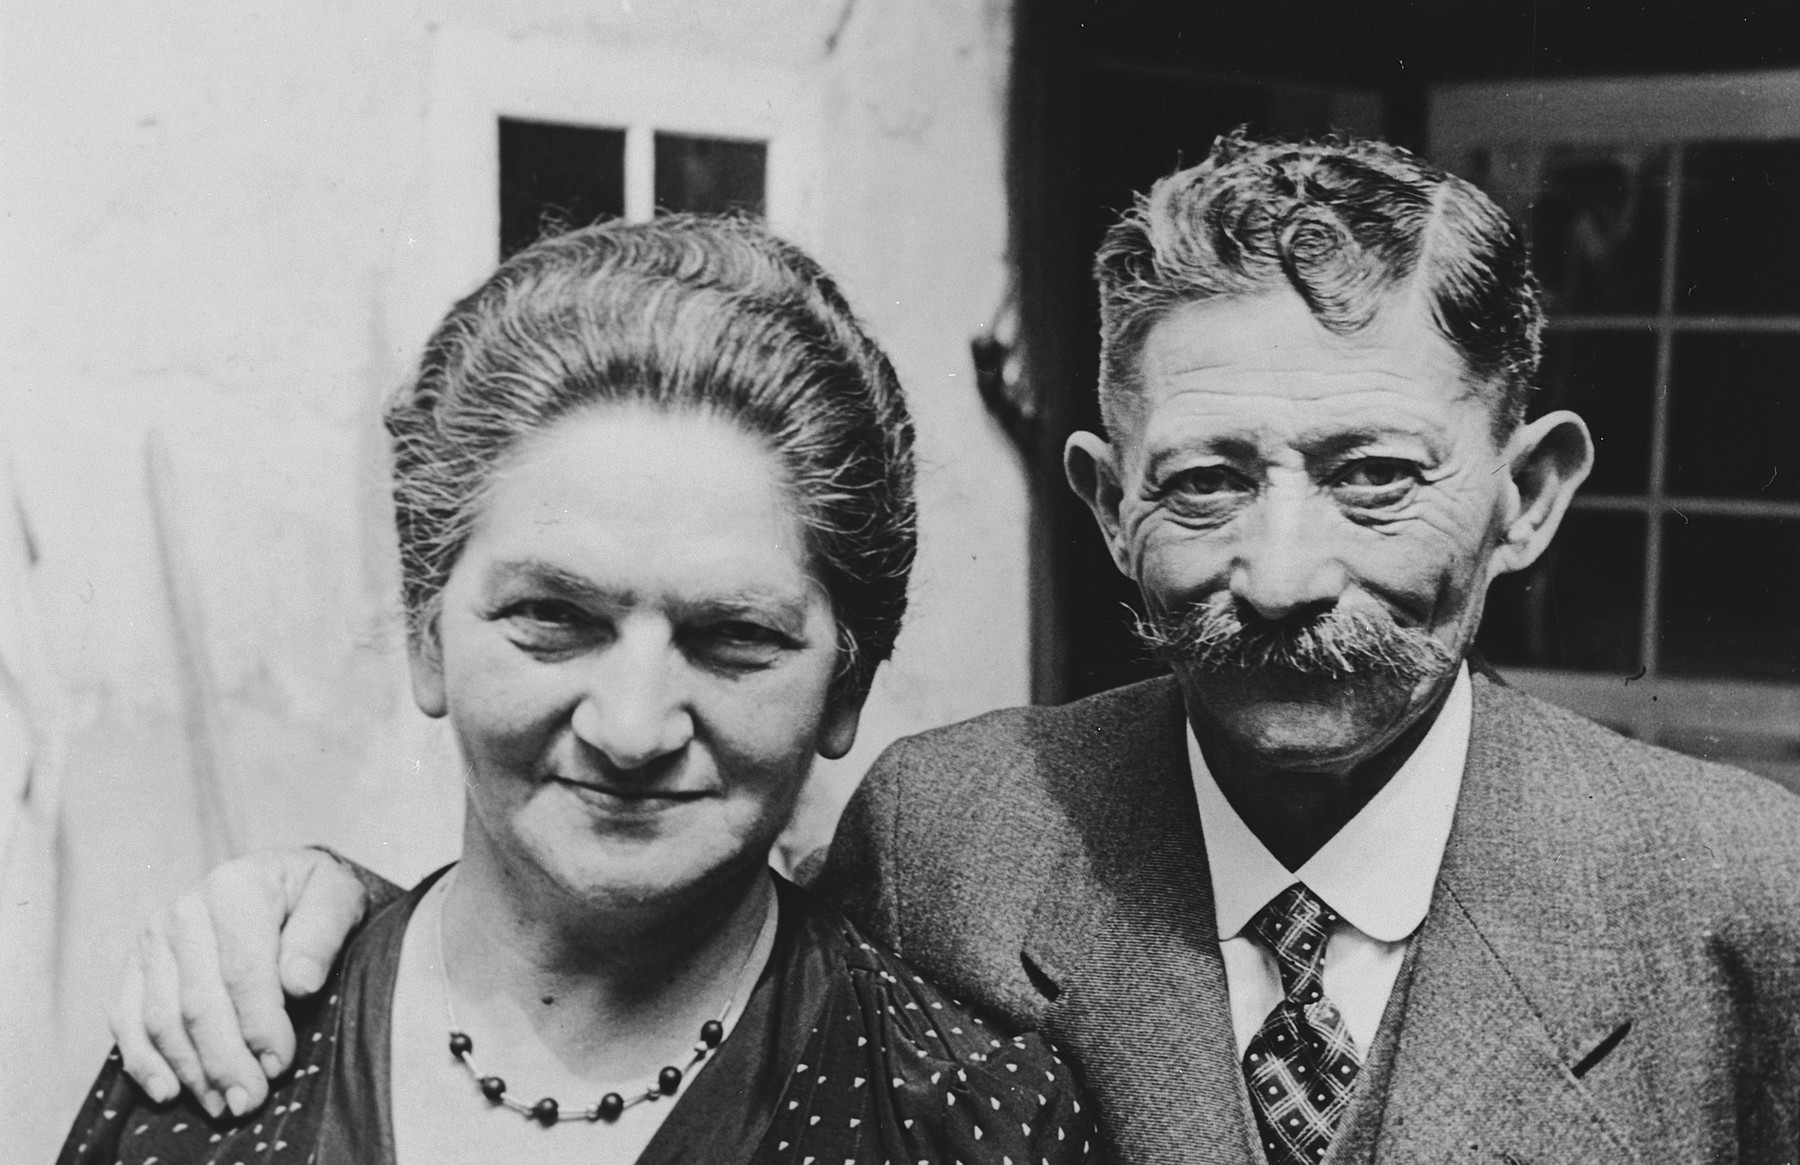 Close-up portrait of a Jewish couple in Breisach Germany.  Pictured are Josephine Geismar Dreyfus and Leopold Dreyfus who later immigrated to the United States.  This is part of series of photographs taken of the Breisach Jewish community on their way to and from synagogue in 1937.  In October 1940 the entire community was deported to the Gurs internment camp in southern France.